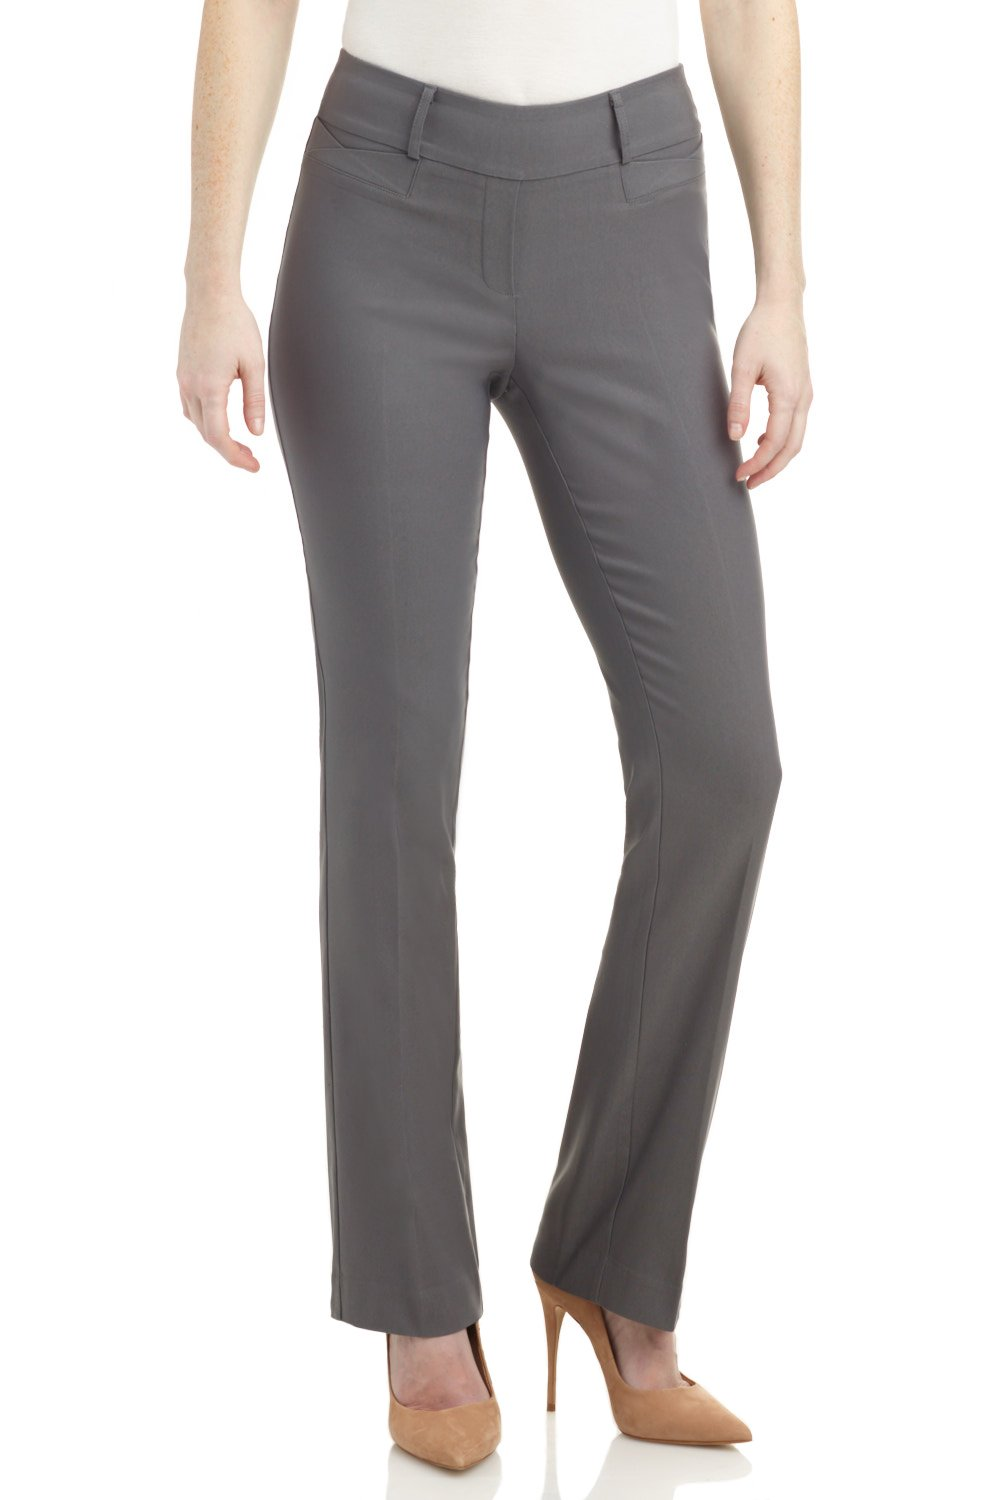 Rekucci Women's Ease in to Comfort Fit Barely Bootcut Stretch Pants (18,Graphite)